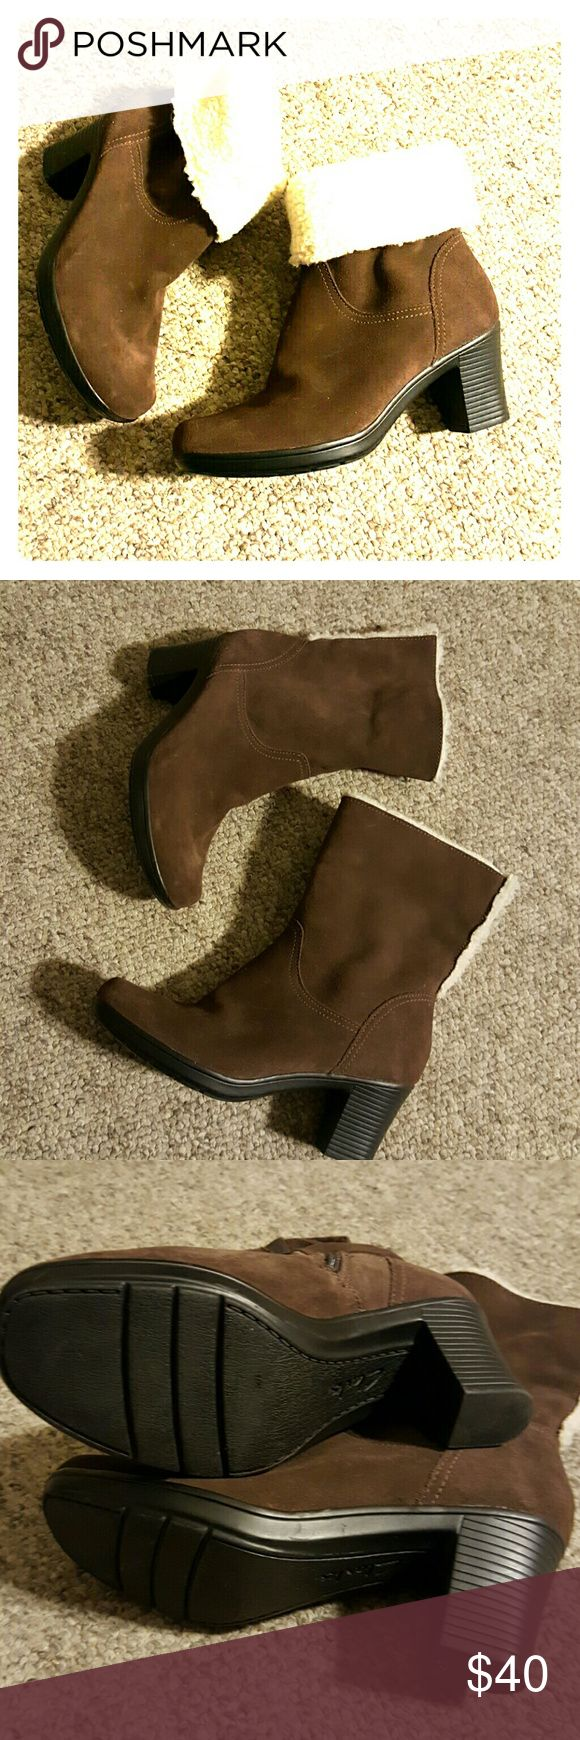 """Clarks Brown Suede Noots Brown leather upper with gaux fur trim. They were eorn only a couple of times. Very clean both inside and outside. The heel is 2.5"""". Clarks Shoes Ankle Boots & Booties"""